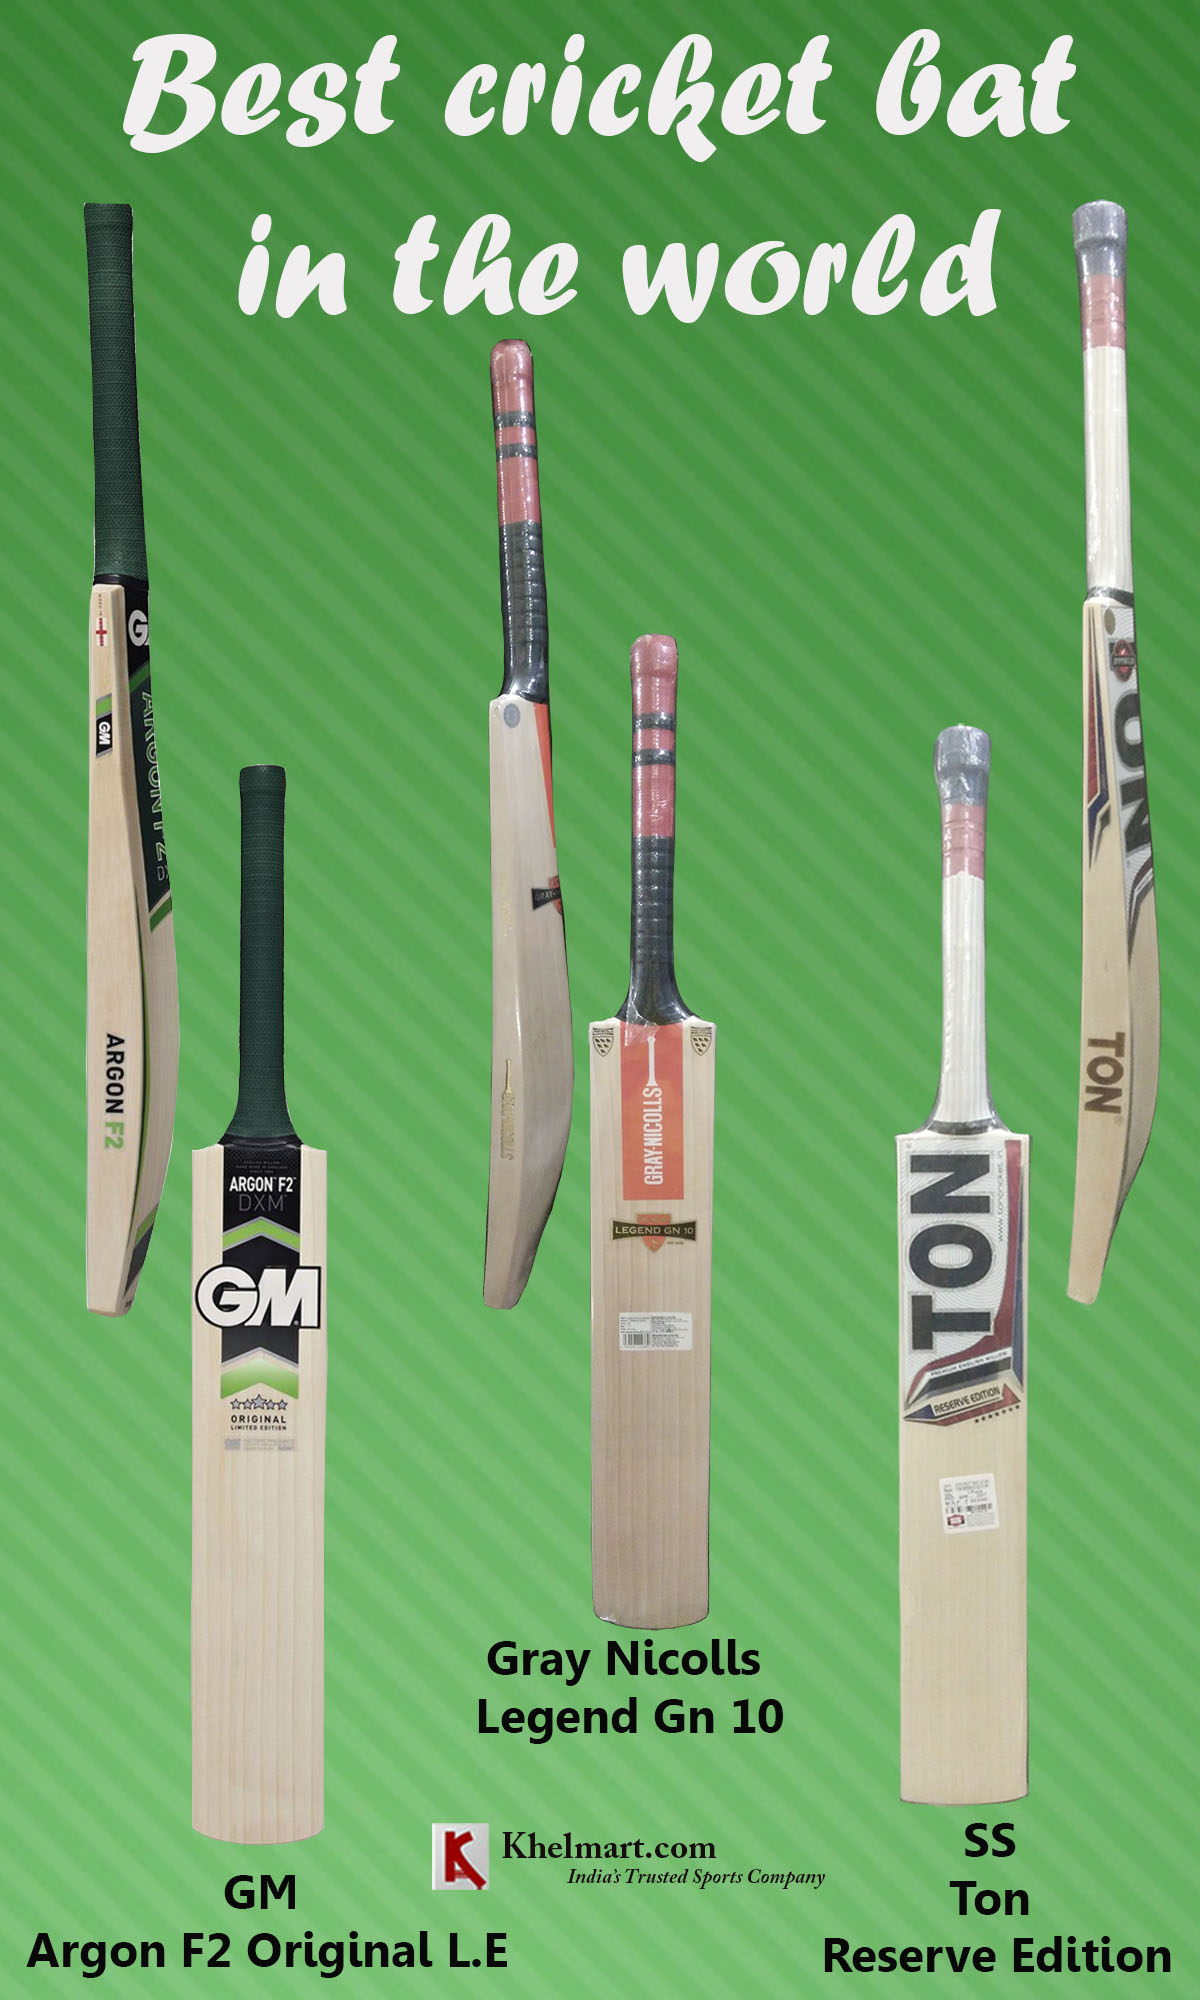 BEST CRICKET BAT IN THE WORLD